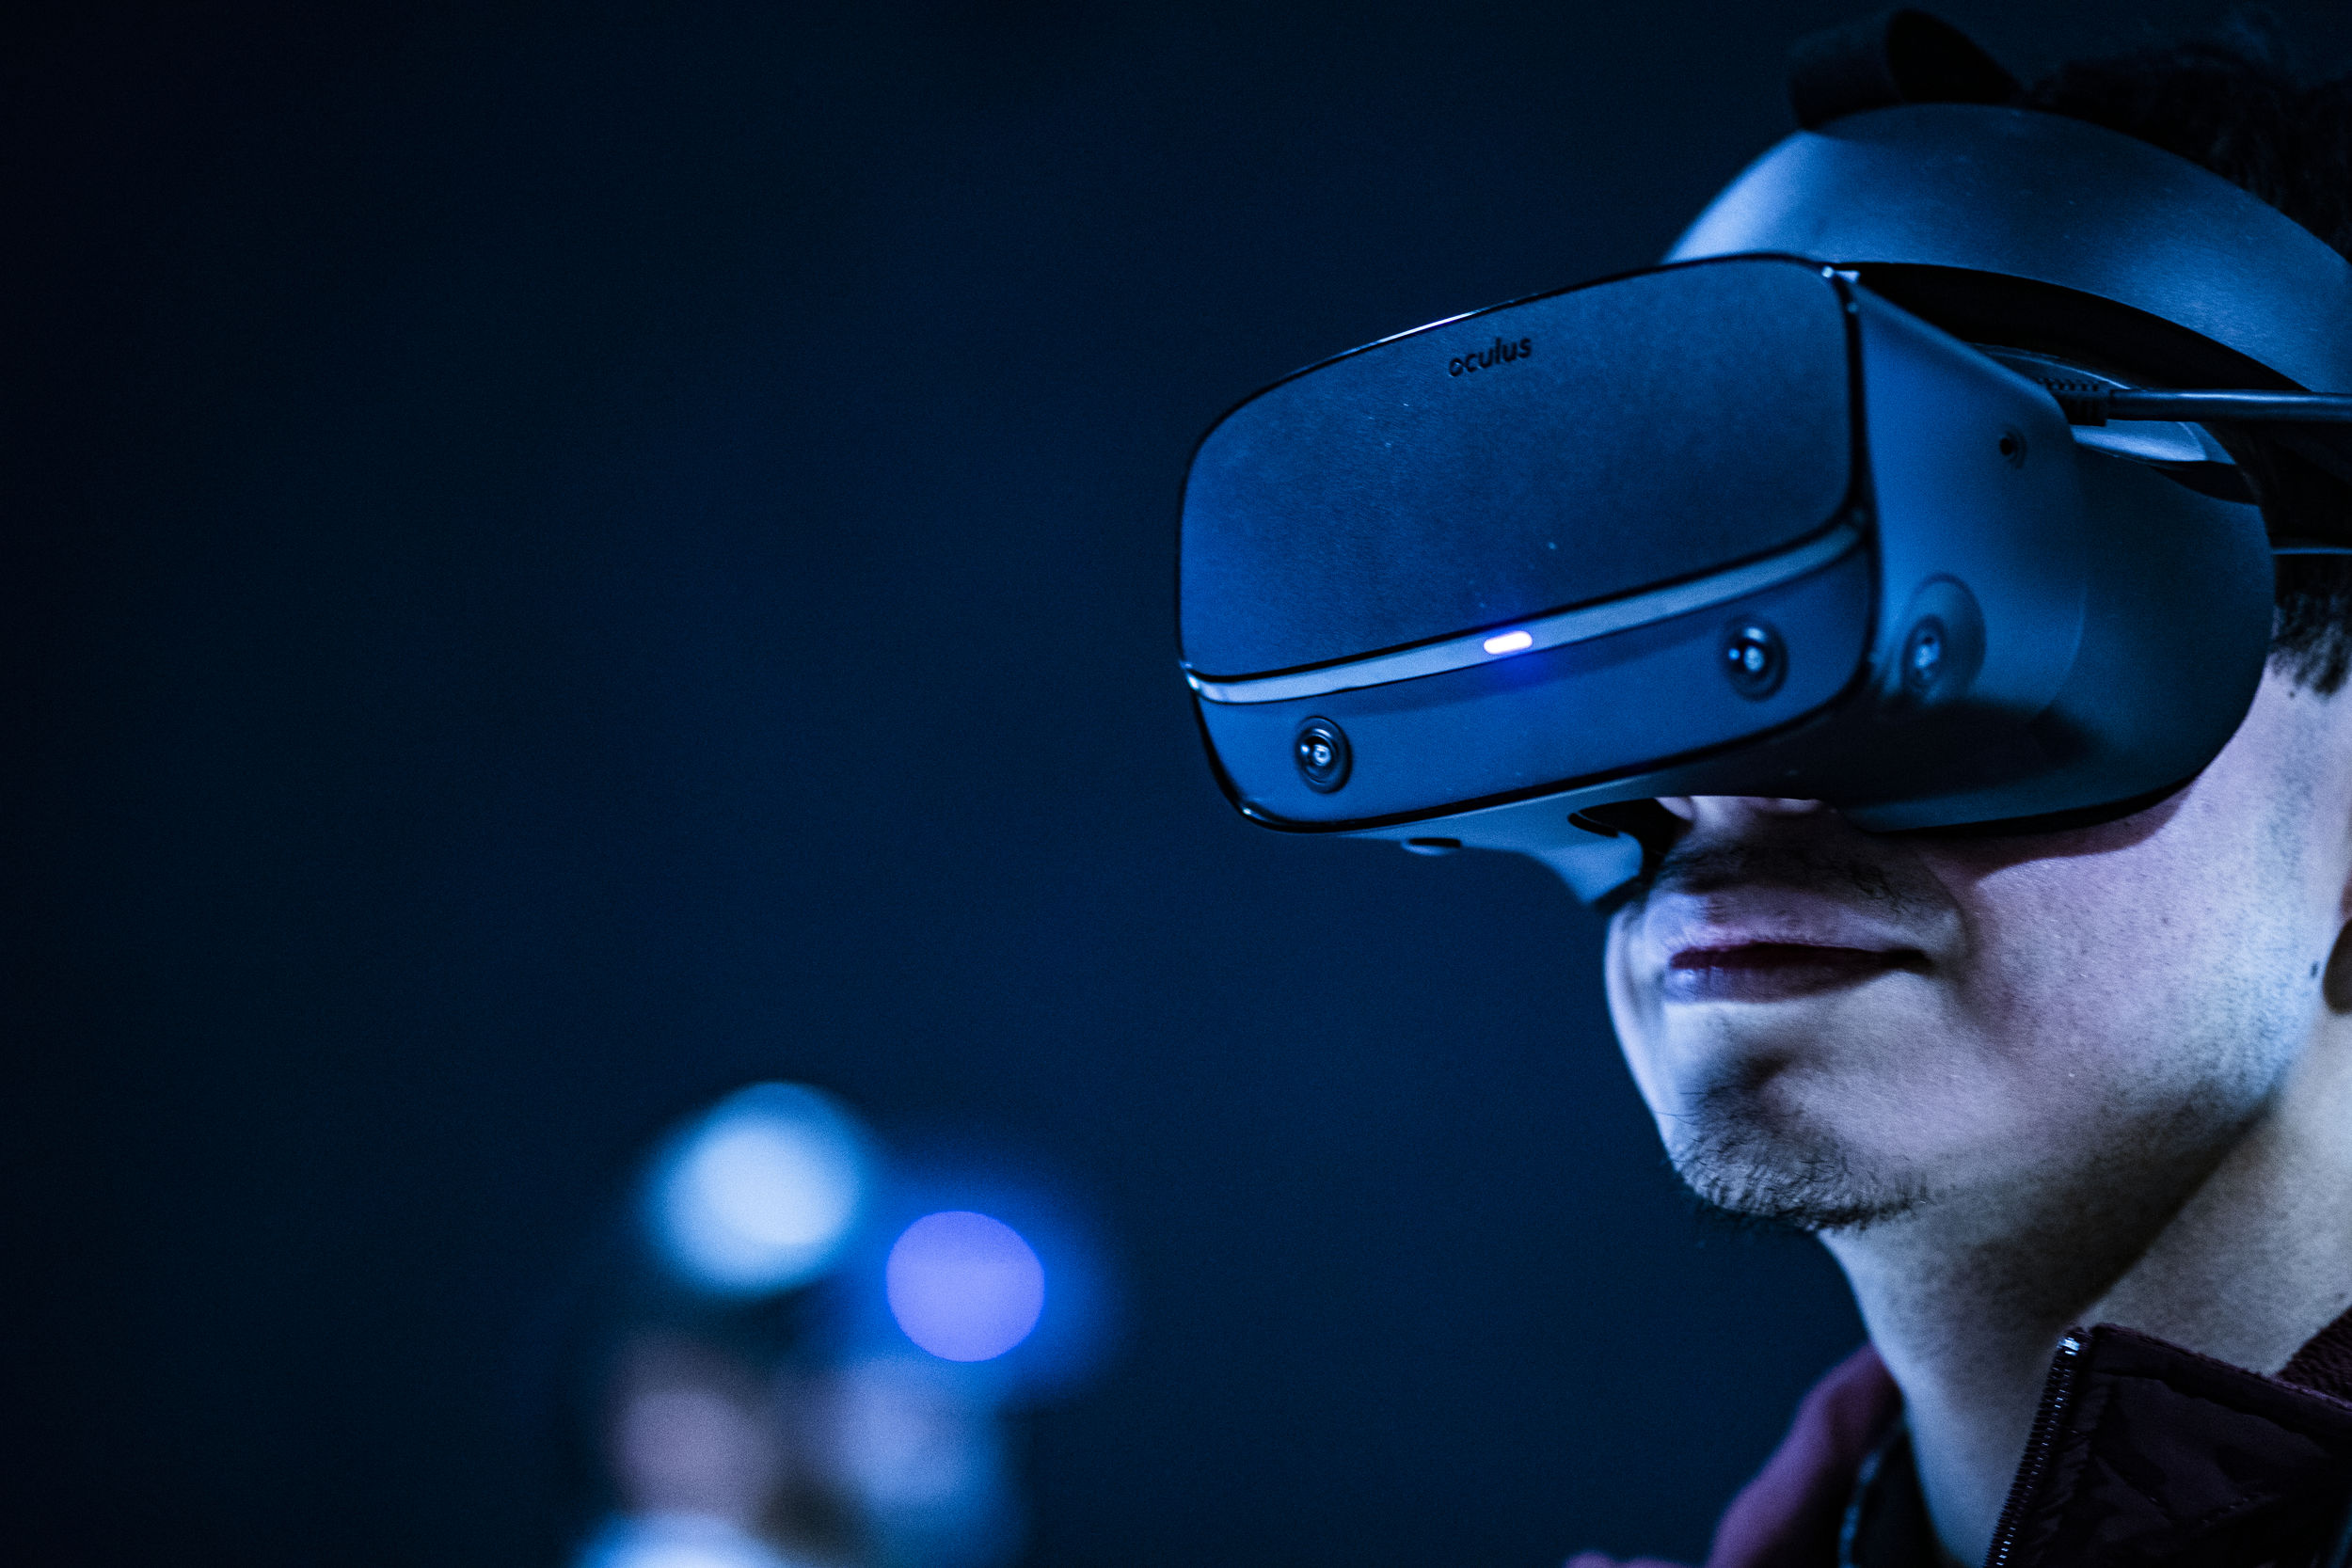 A student wears a virtual reality headset during a lab.